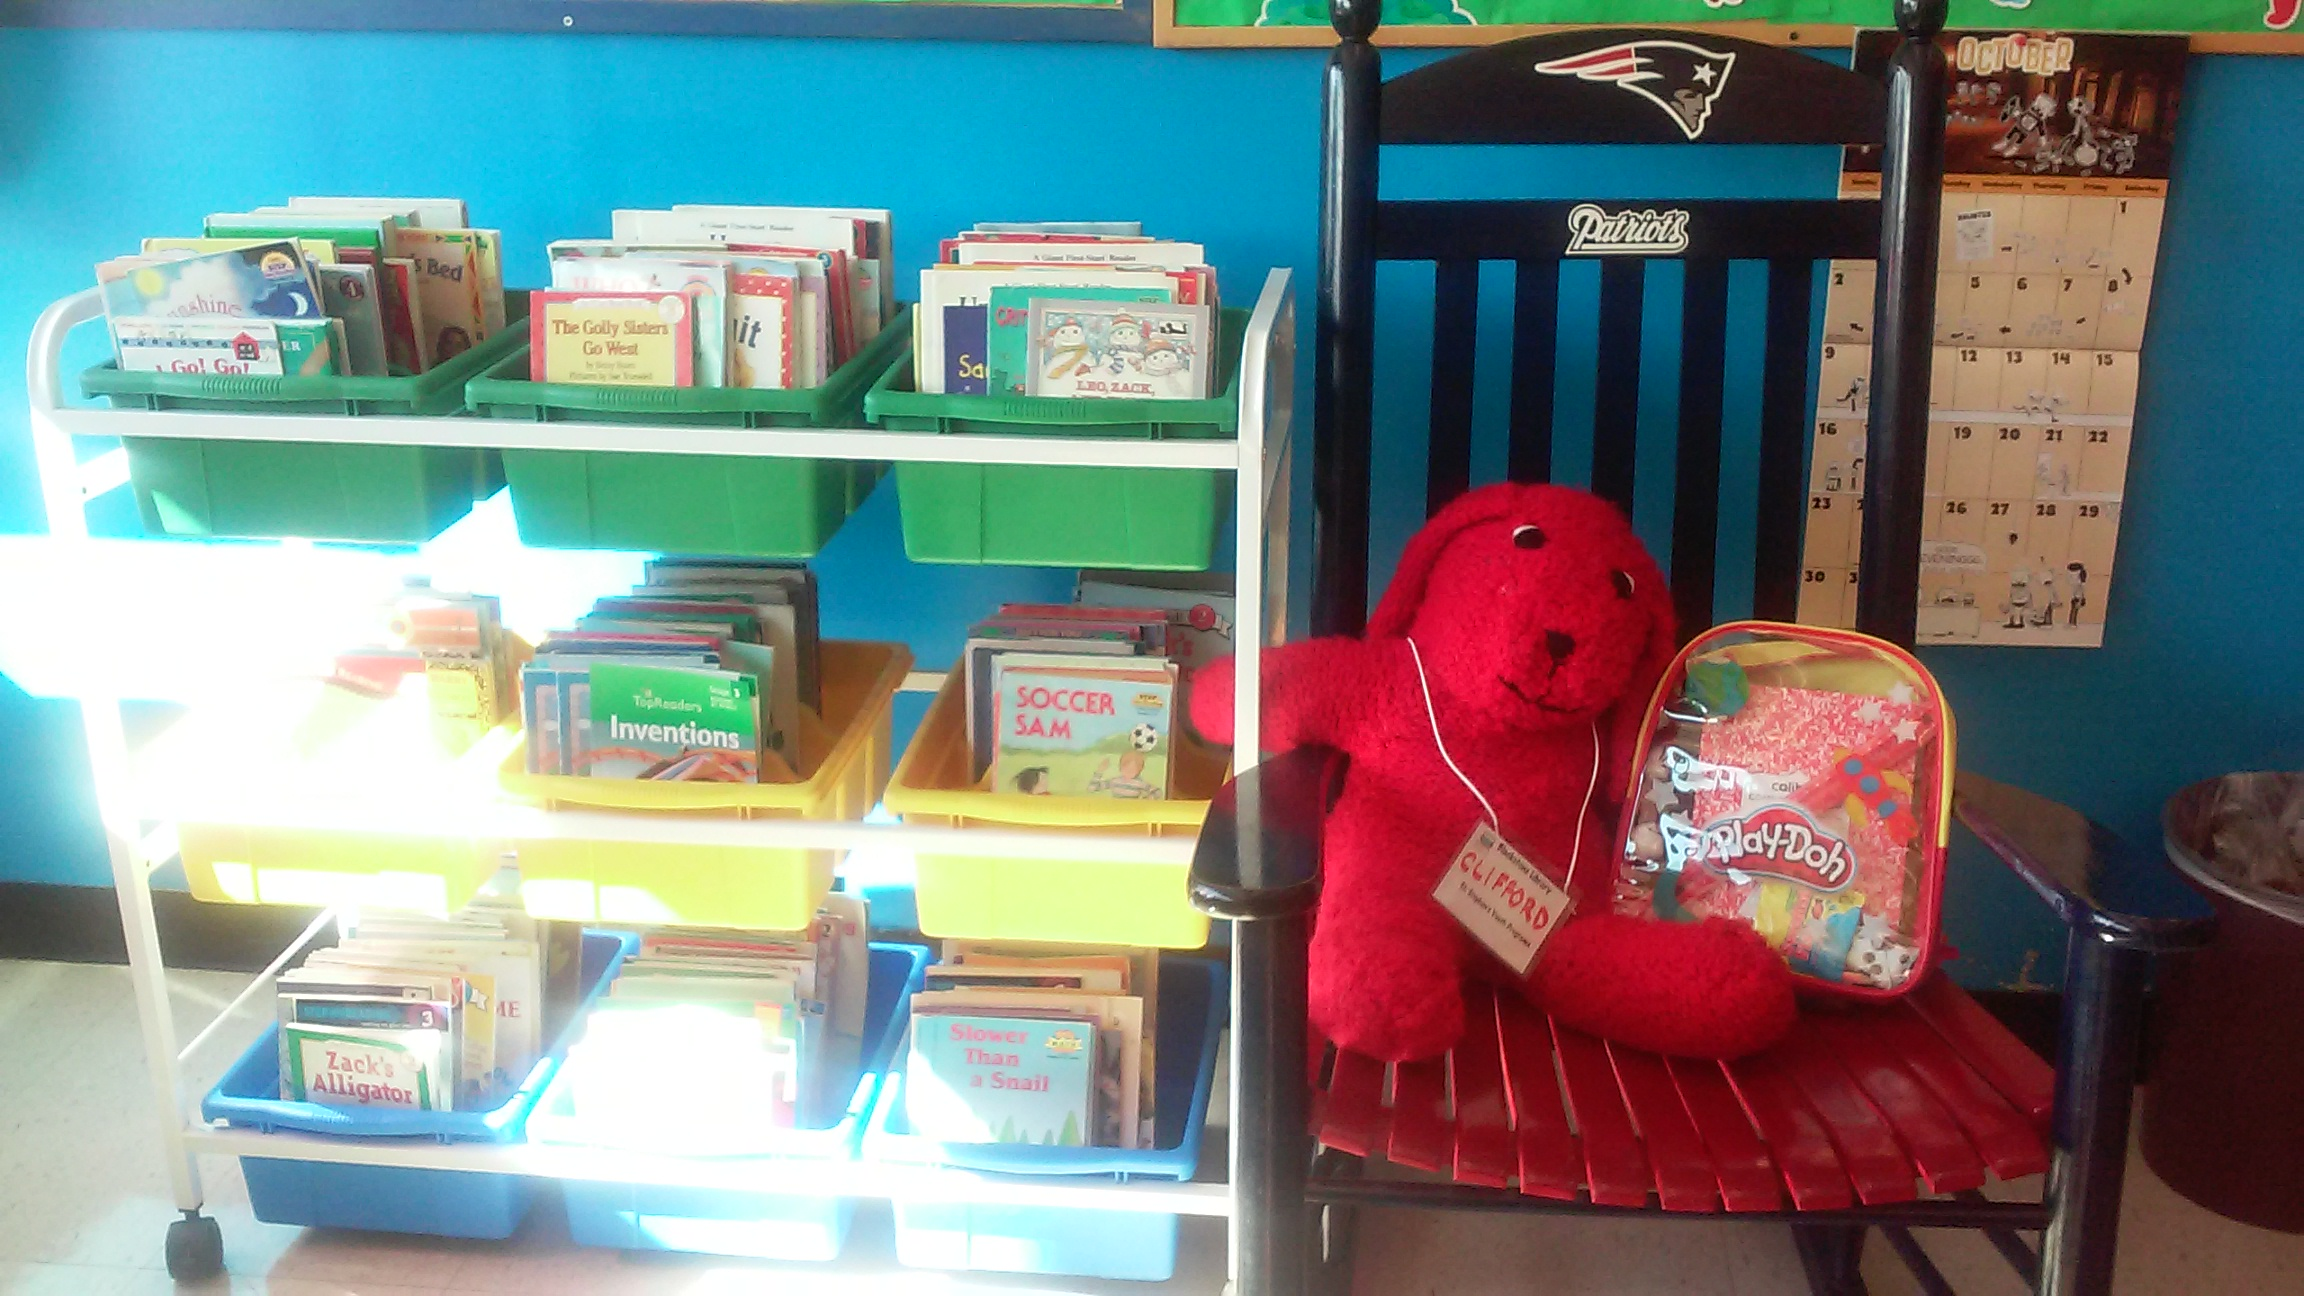 Clifford, the library's mascot